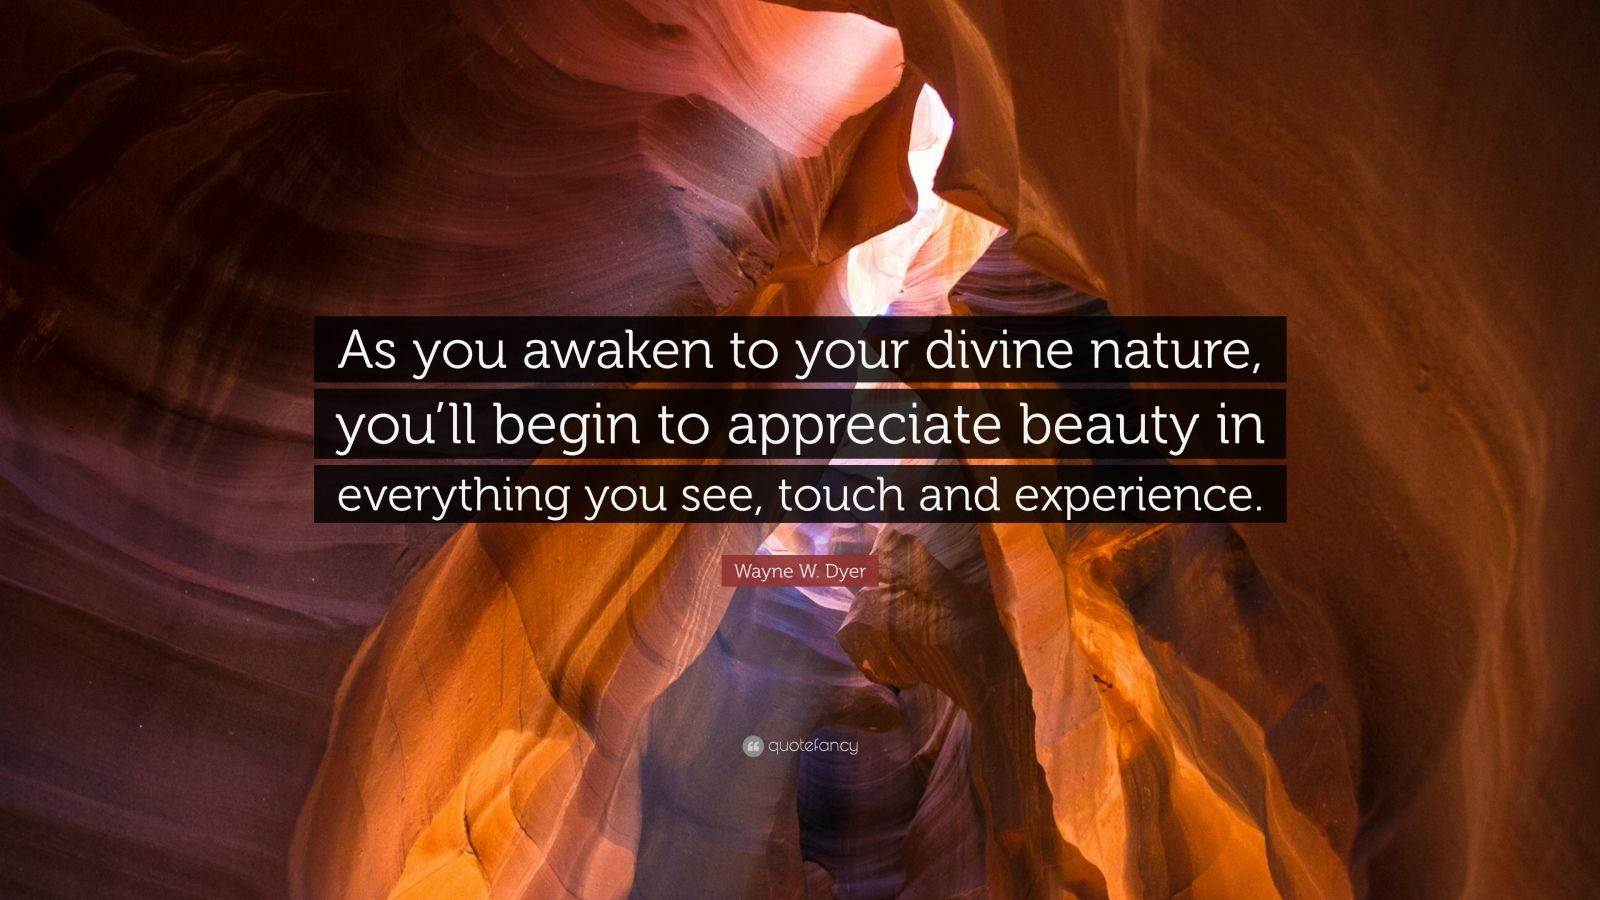 """Wayne W. Dyer Quote: """"As you awaken to your divine nature, you'll begin to appreciate beauty in everything you see, touch and experience."""""""